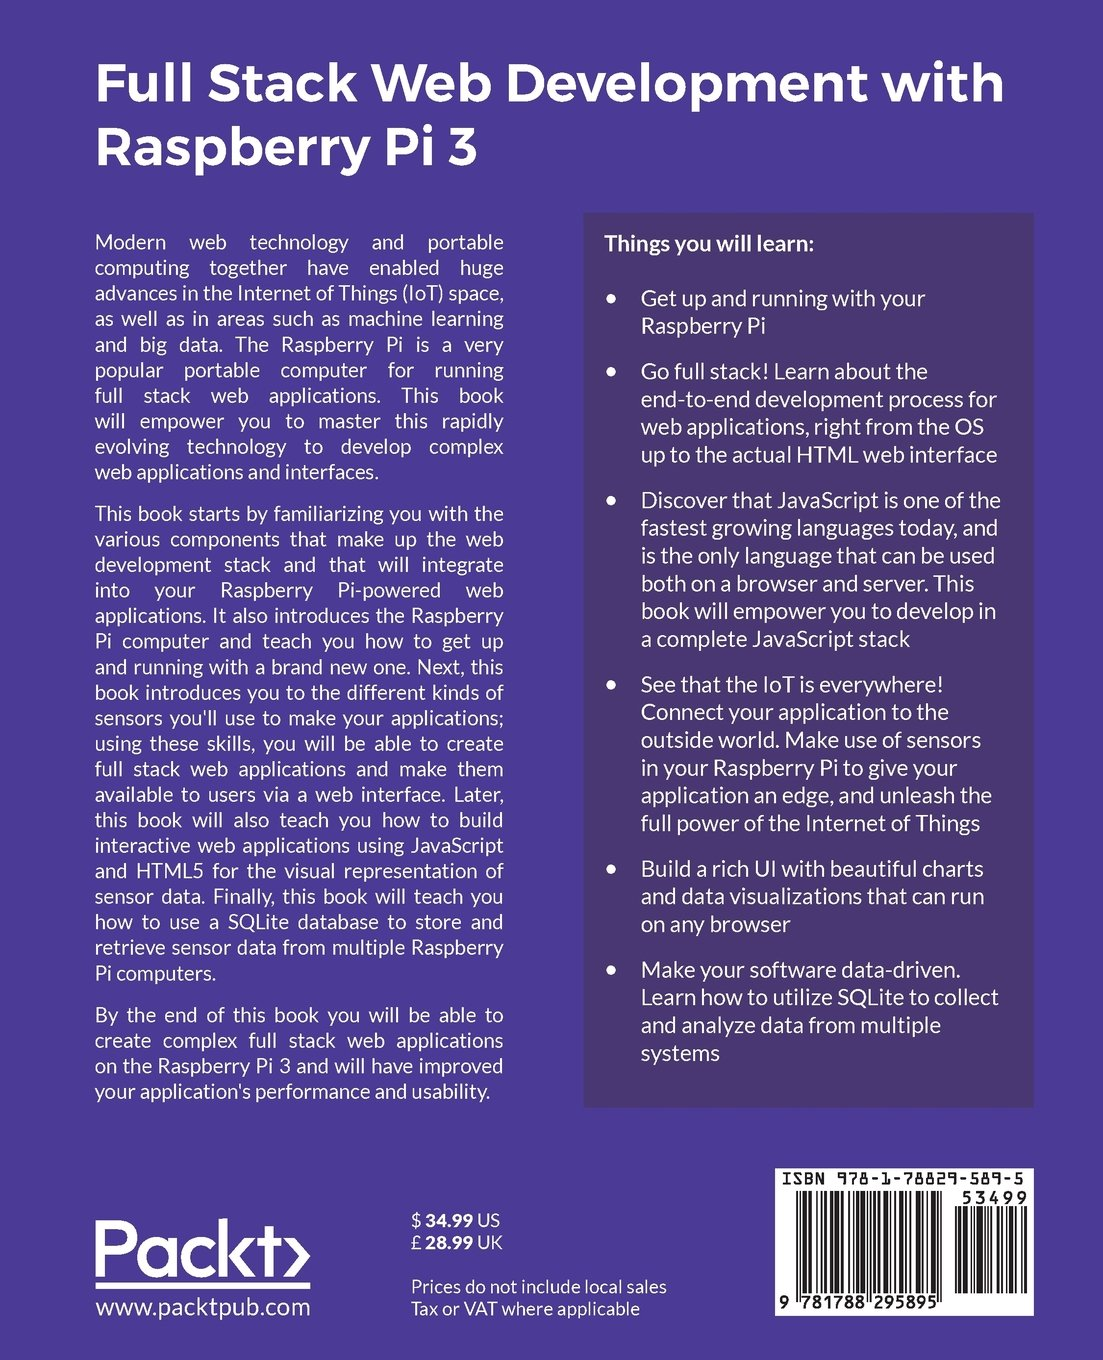 Full Stack Web Development with Raspberry Pi 3: Build complex web